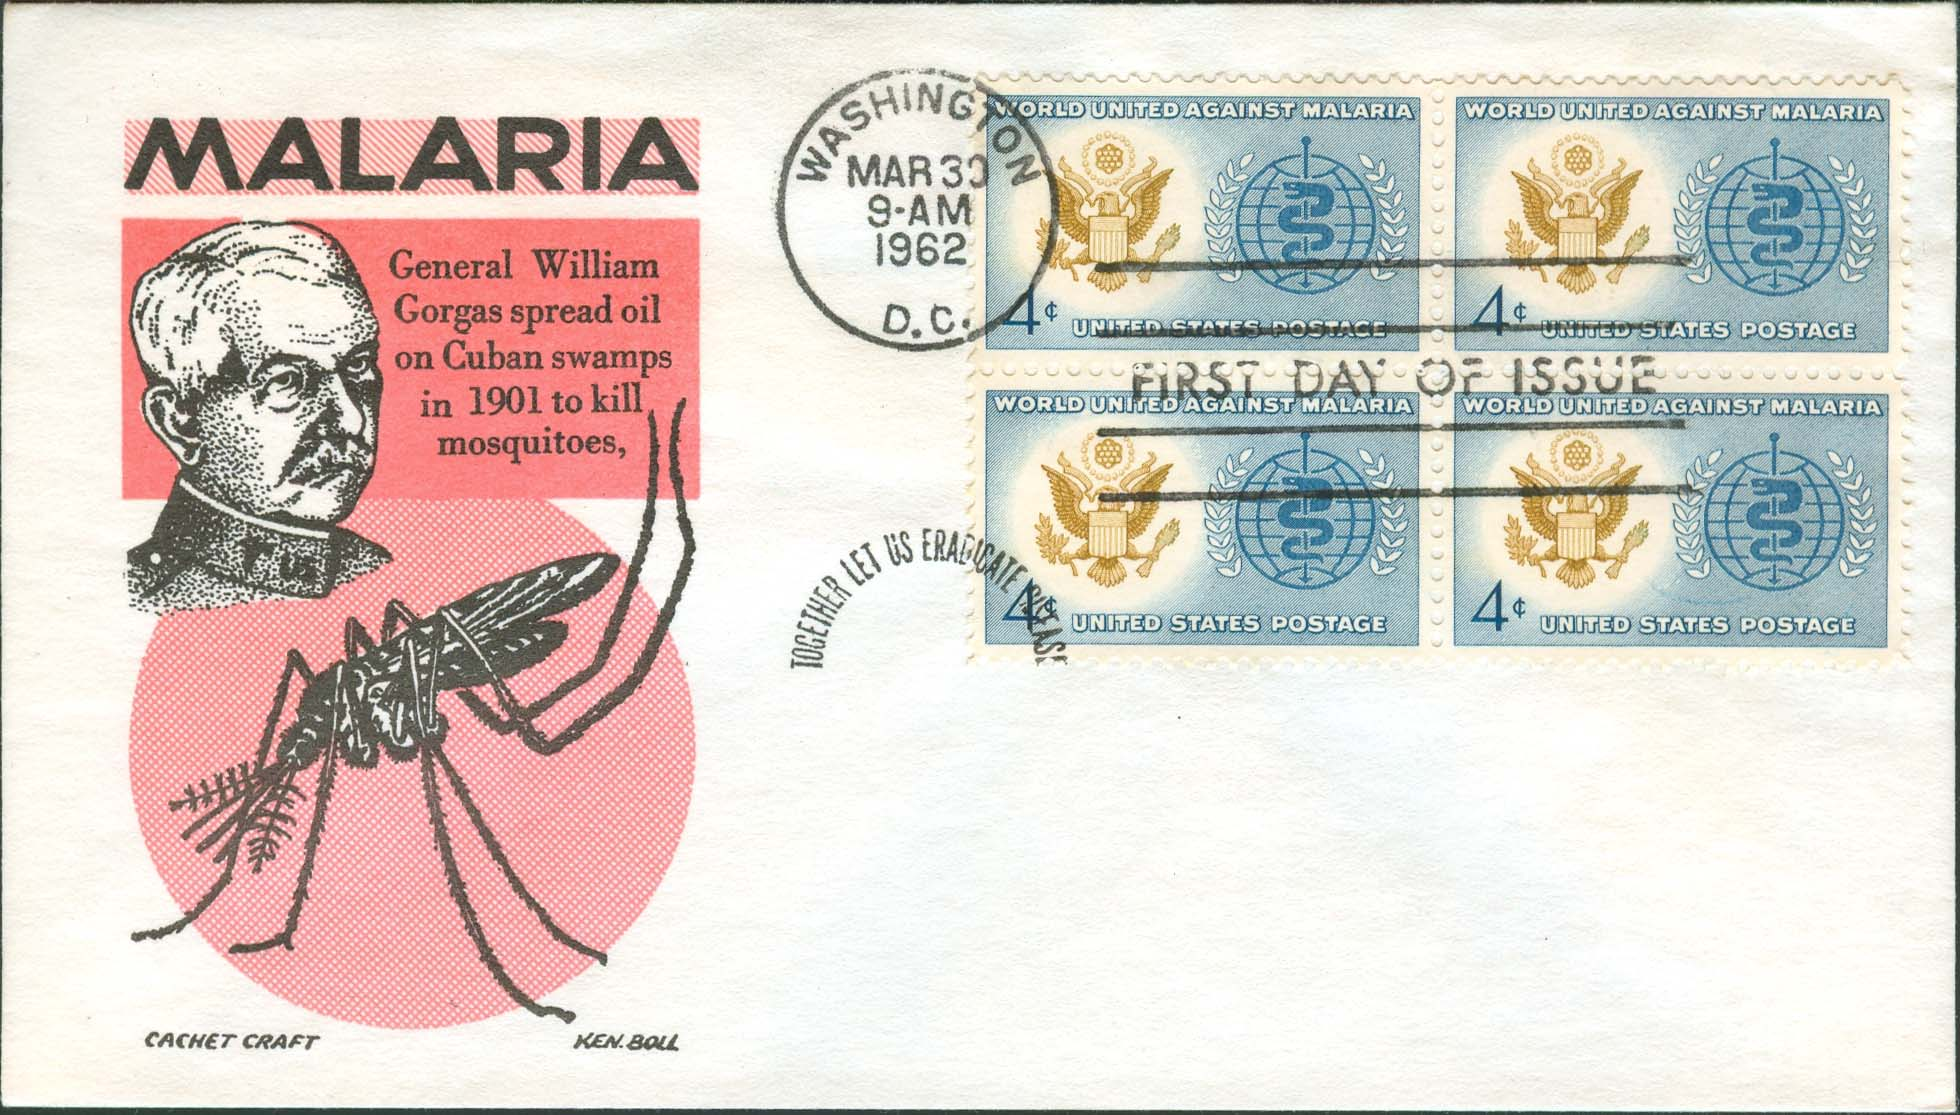 Ken Boll FDC Cachet (Red/Black) w/ United States Scott 1194 (Block of 4) (Different Cancellation)